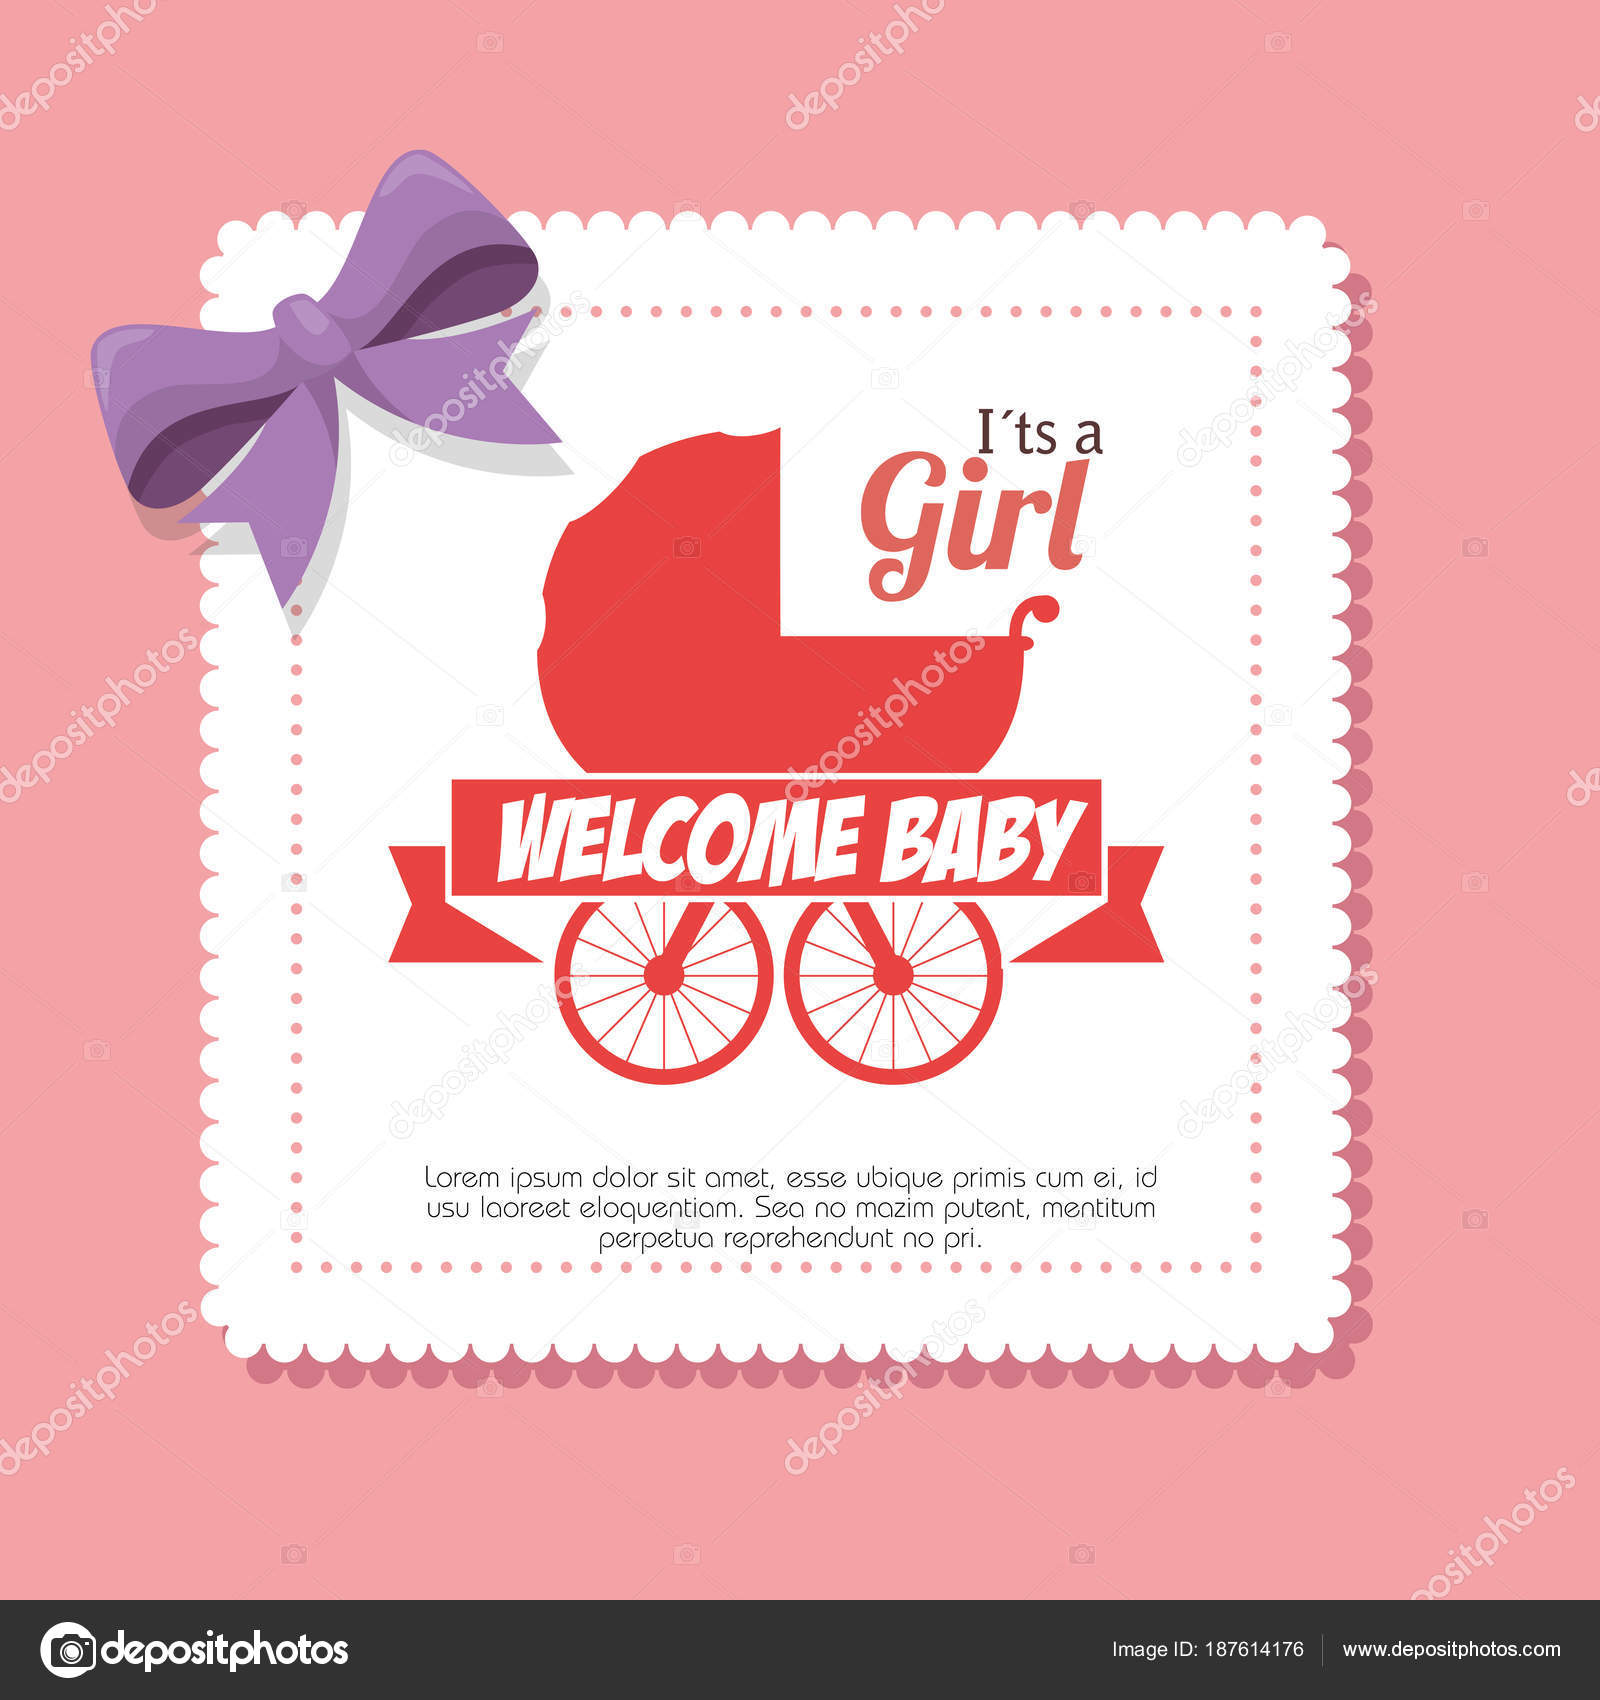 Perfect Pink Baby Shower Invitations Illustration - Invitations and ...